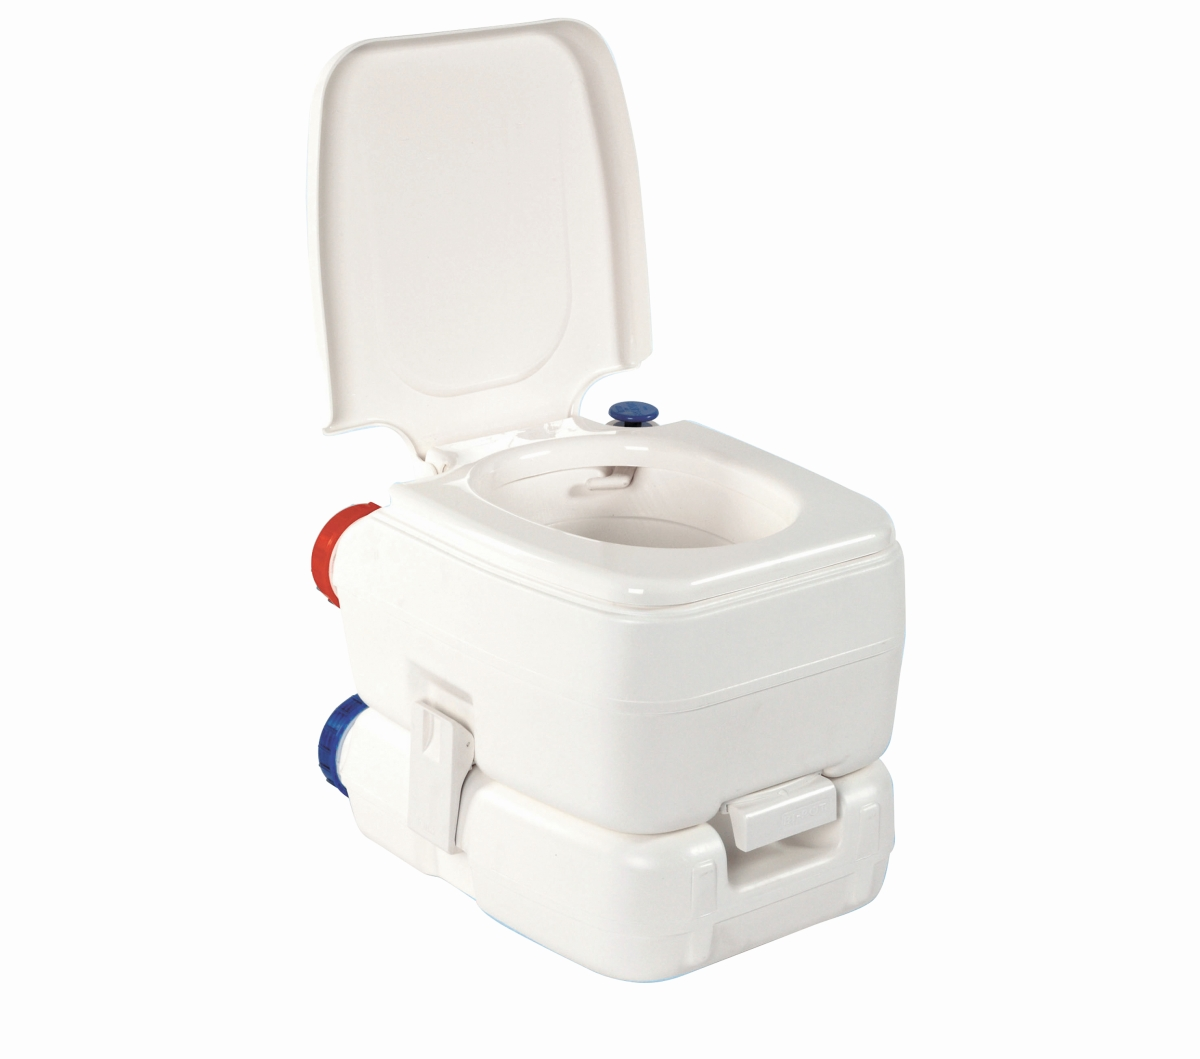 Fiamma Toilette BI-POT 34